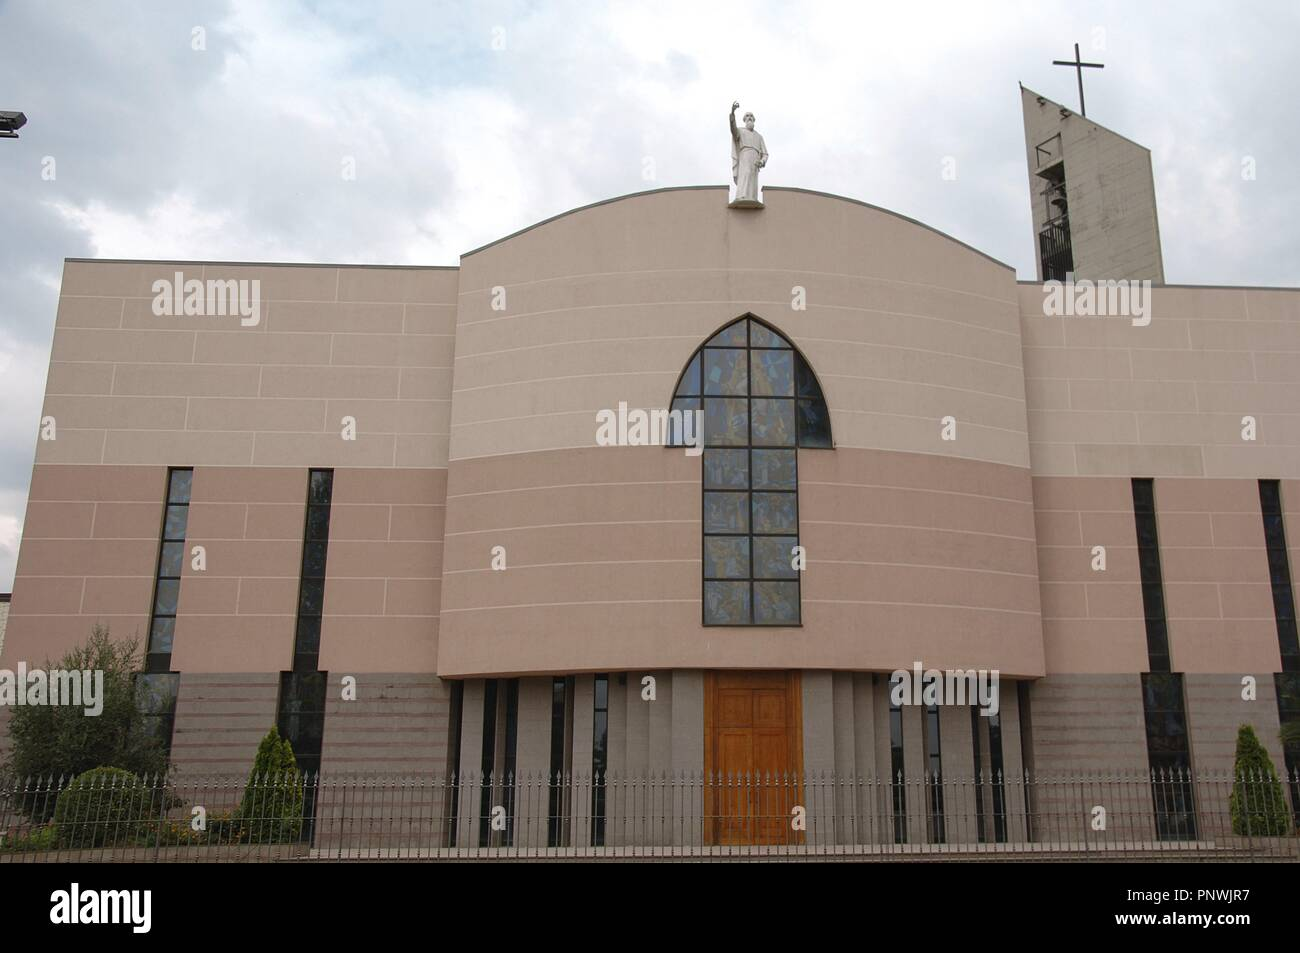 Albania. Tirana. St Paul's Cathedral. Completed in 1999. Facade. Outside. Stock Photo